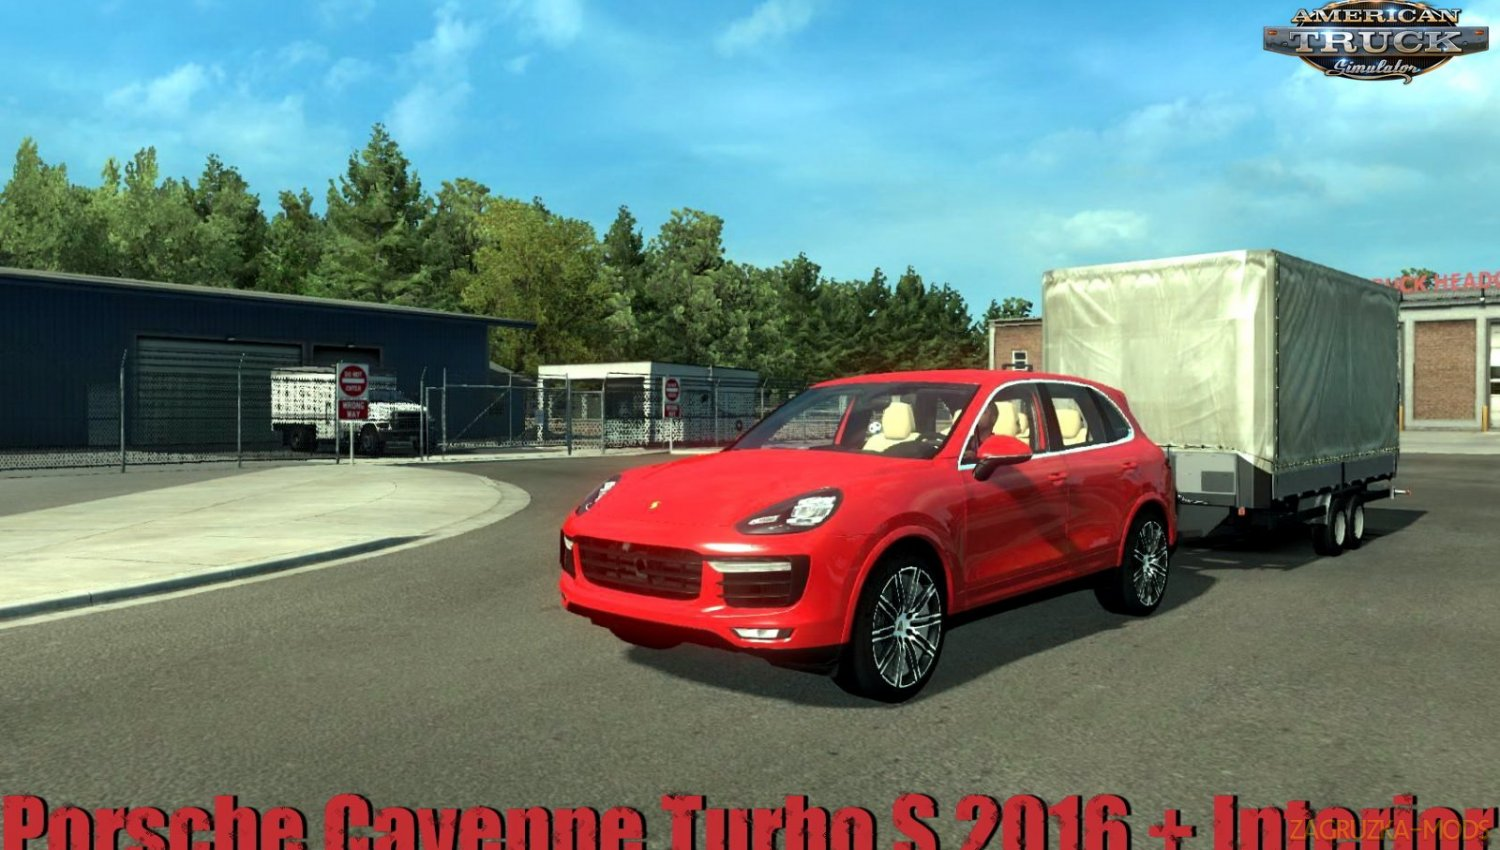 Porsche Cayenne Turbo S 2016 + Interior v1.1 (1.34.x) for ATS